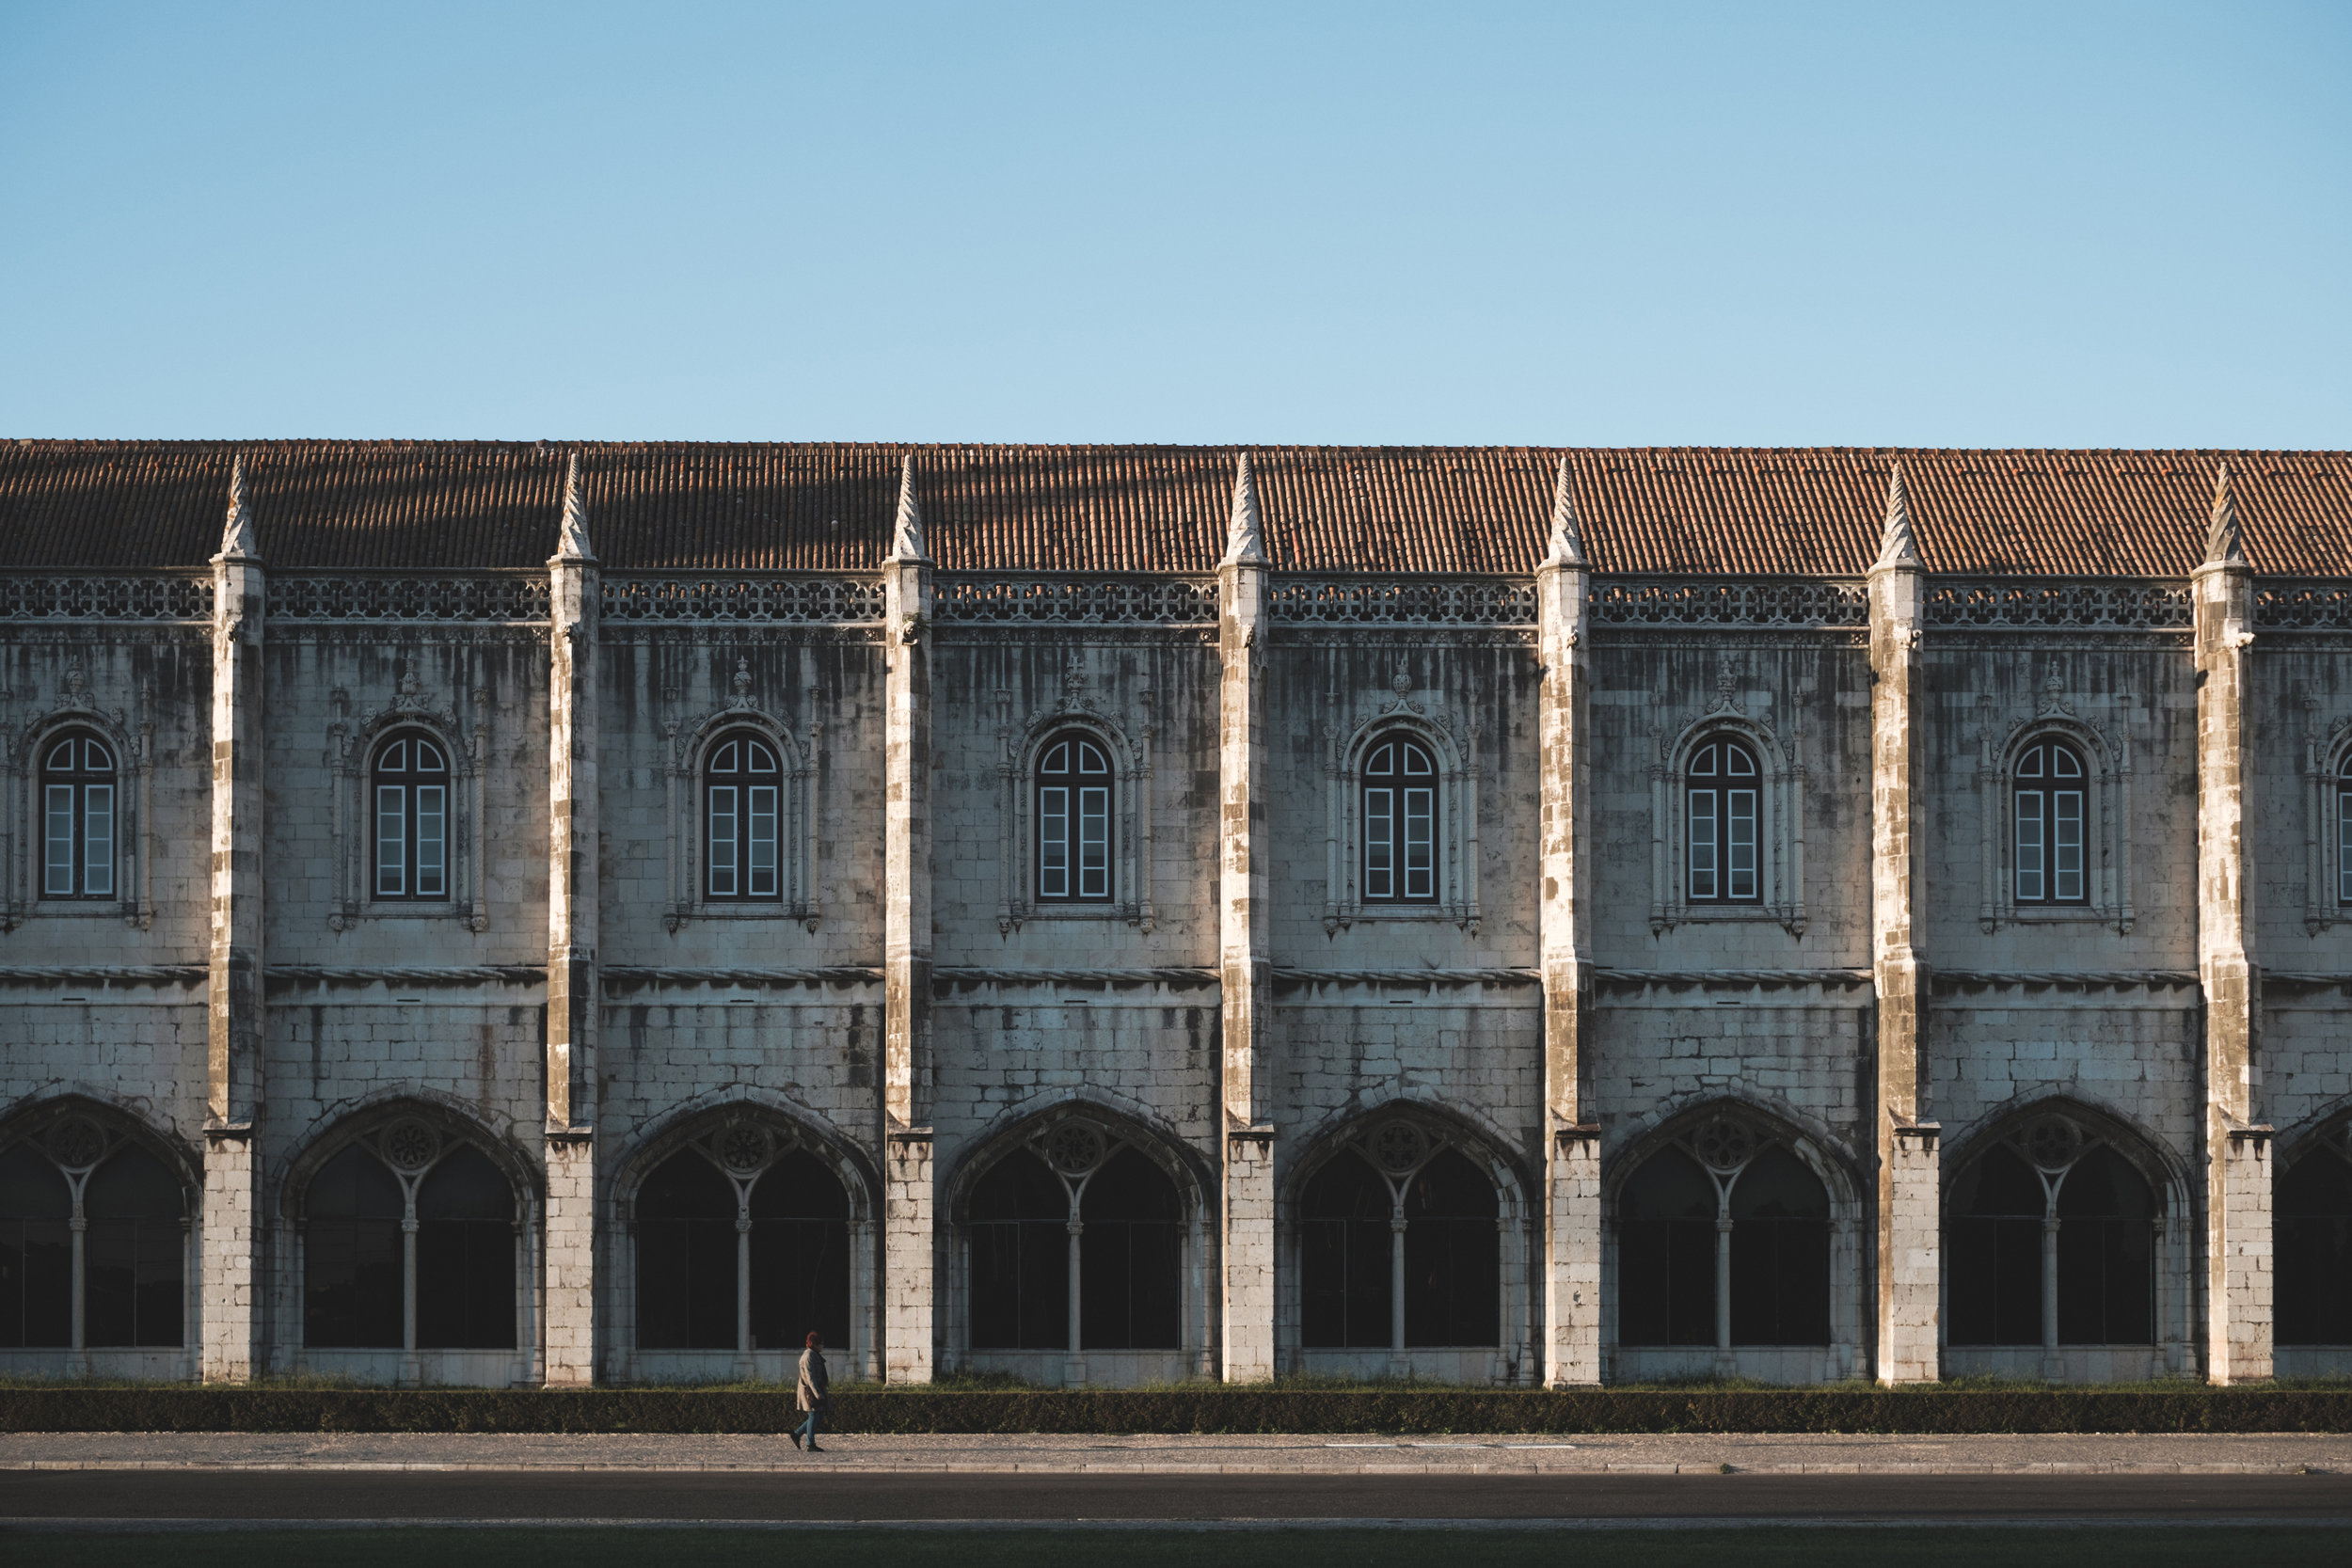 A man walks by the Jerónimos Monastery in Lisbon Portugal